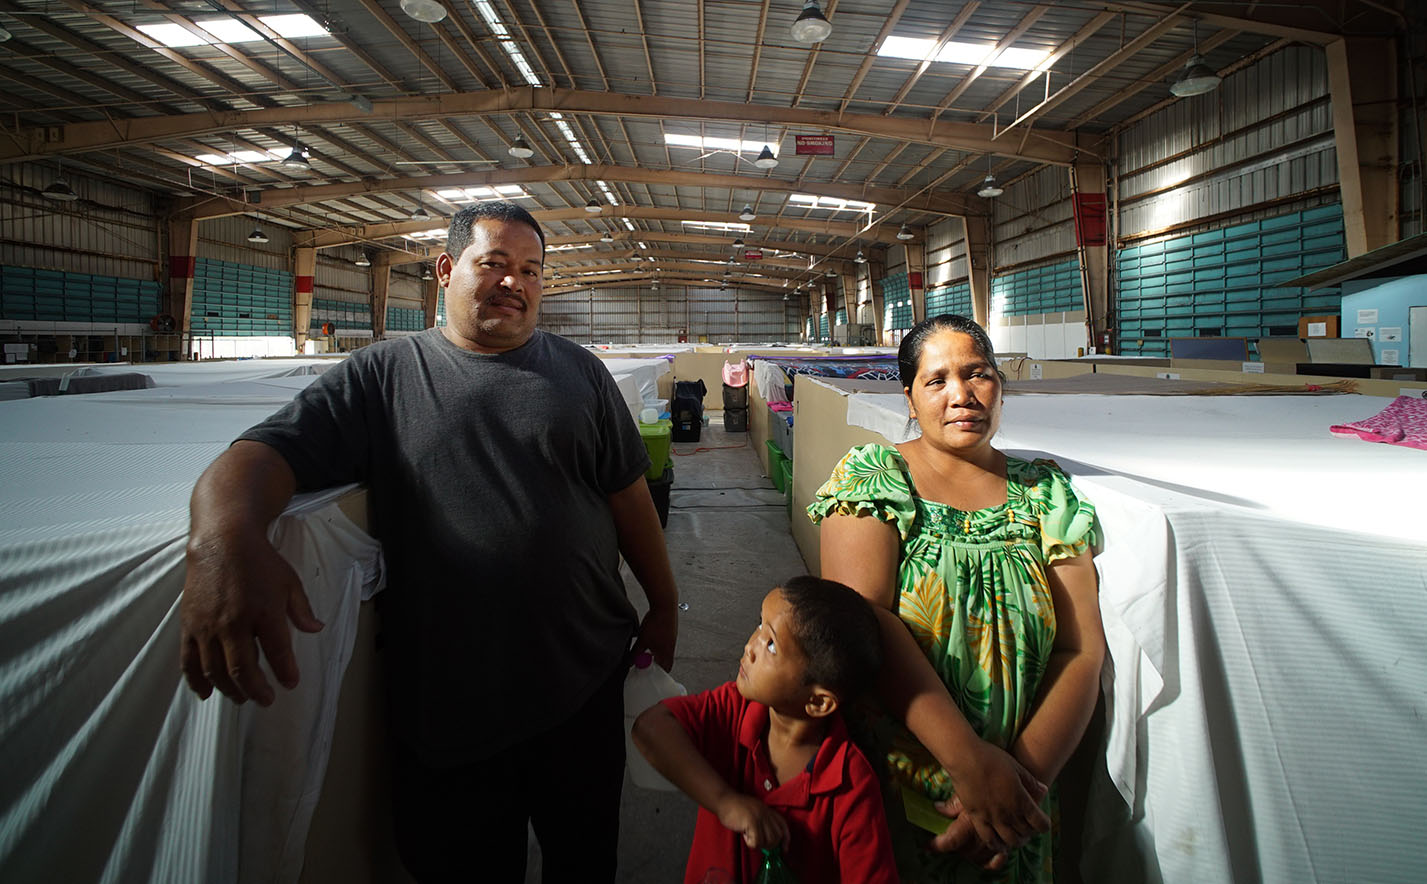 <p>Careless Mathin, left, and Kiana Kasper found shelter for their family at the Next Step homeless shelter in Honolulu. Originally from Chuuk, they came to Hawaii so that Mathin could treat his diabetes. Photo by Cory Lum.</p>